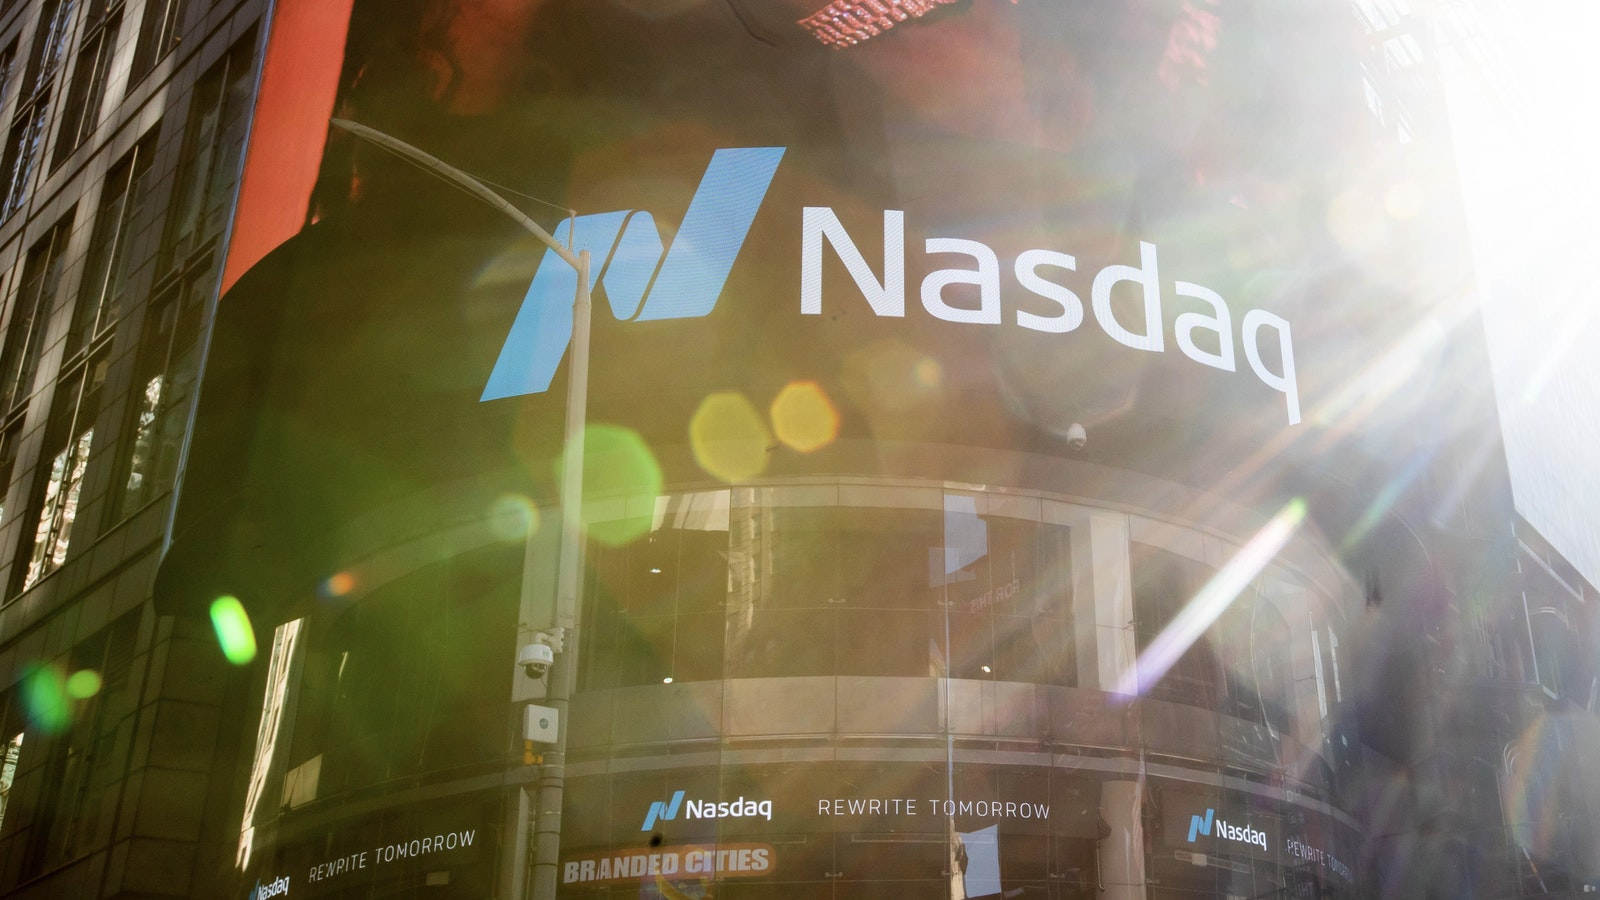 The Nasdaq's New York office. Photo by Bloomberg